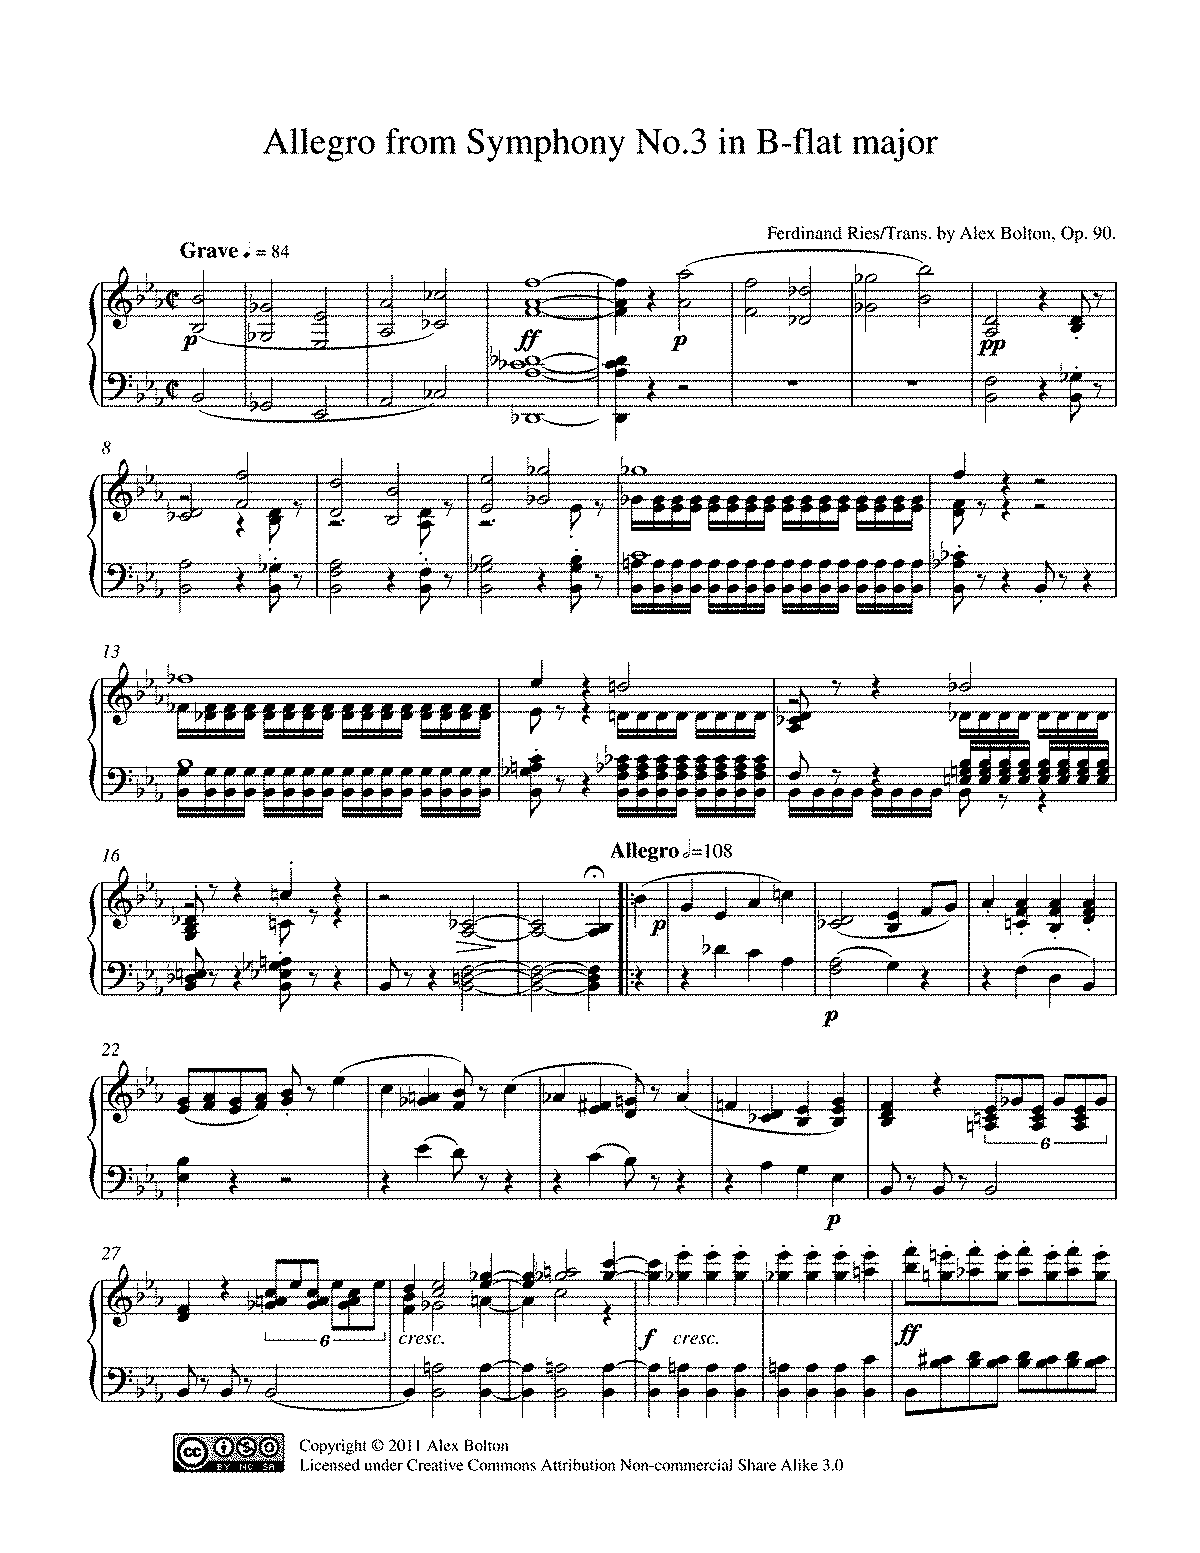 PMLP205466-Ries Allegro from Symphony No 3 (2H Bolton).pdf